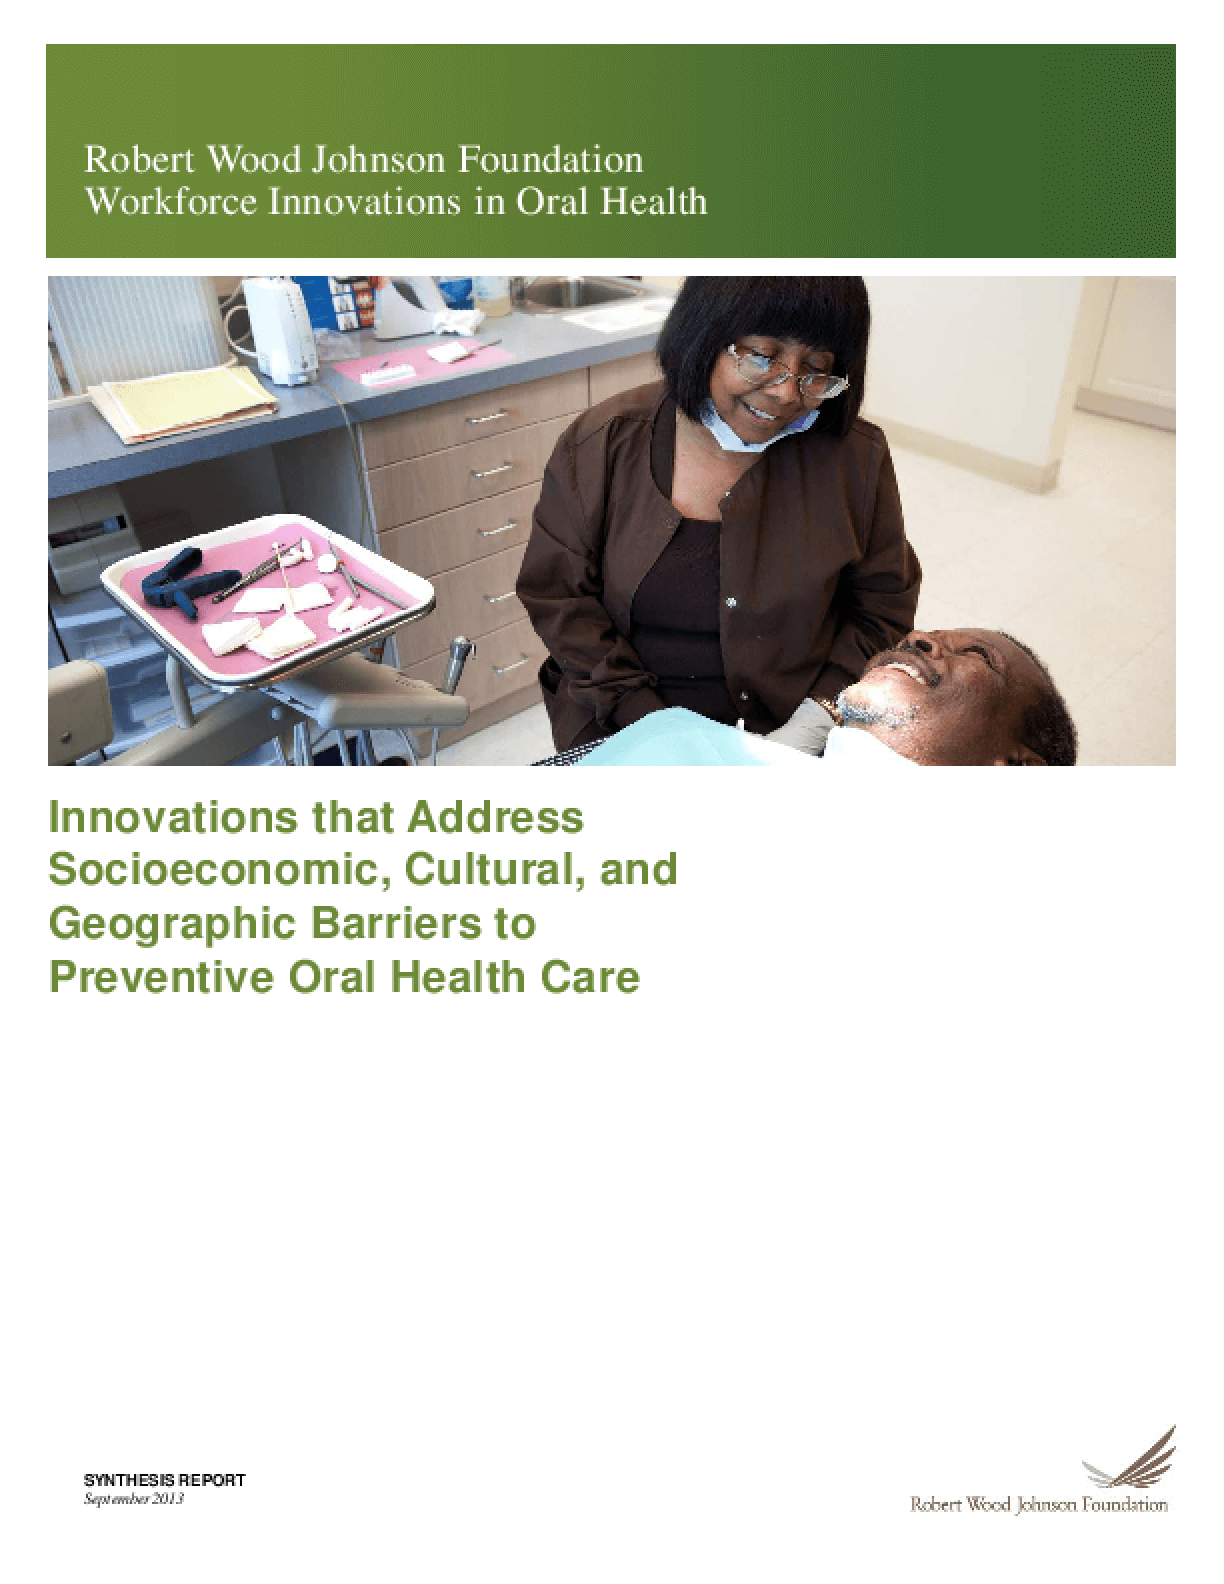 Innovations that Address Socioeconomic, Cultural, and Geographic Barriers to Preventive Oral Health Care